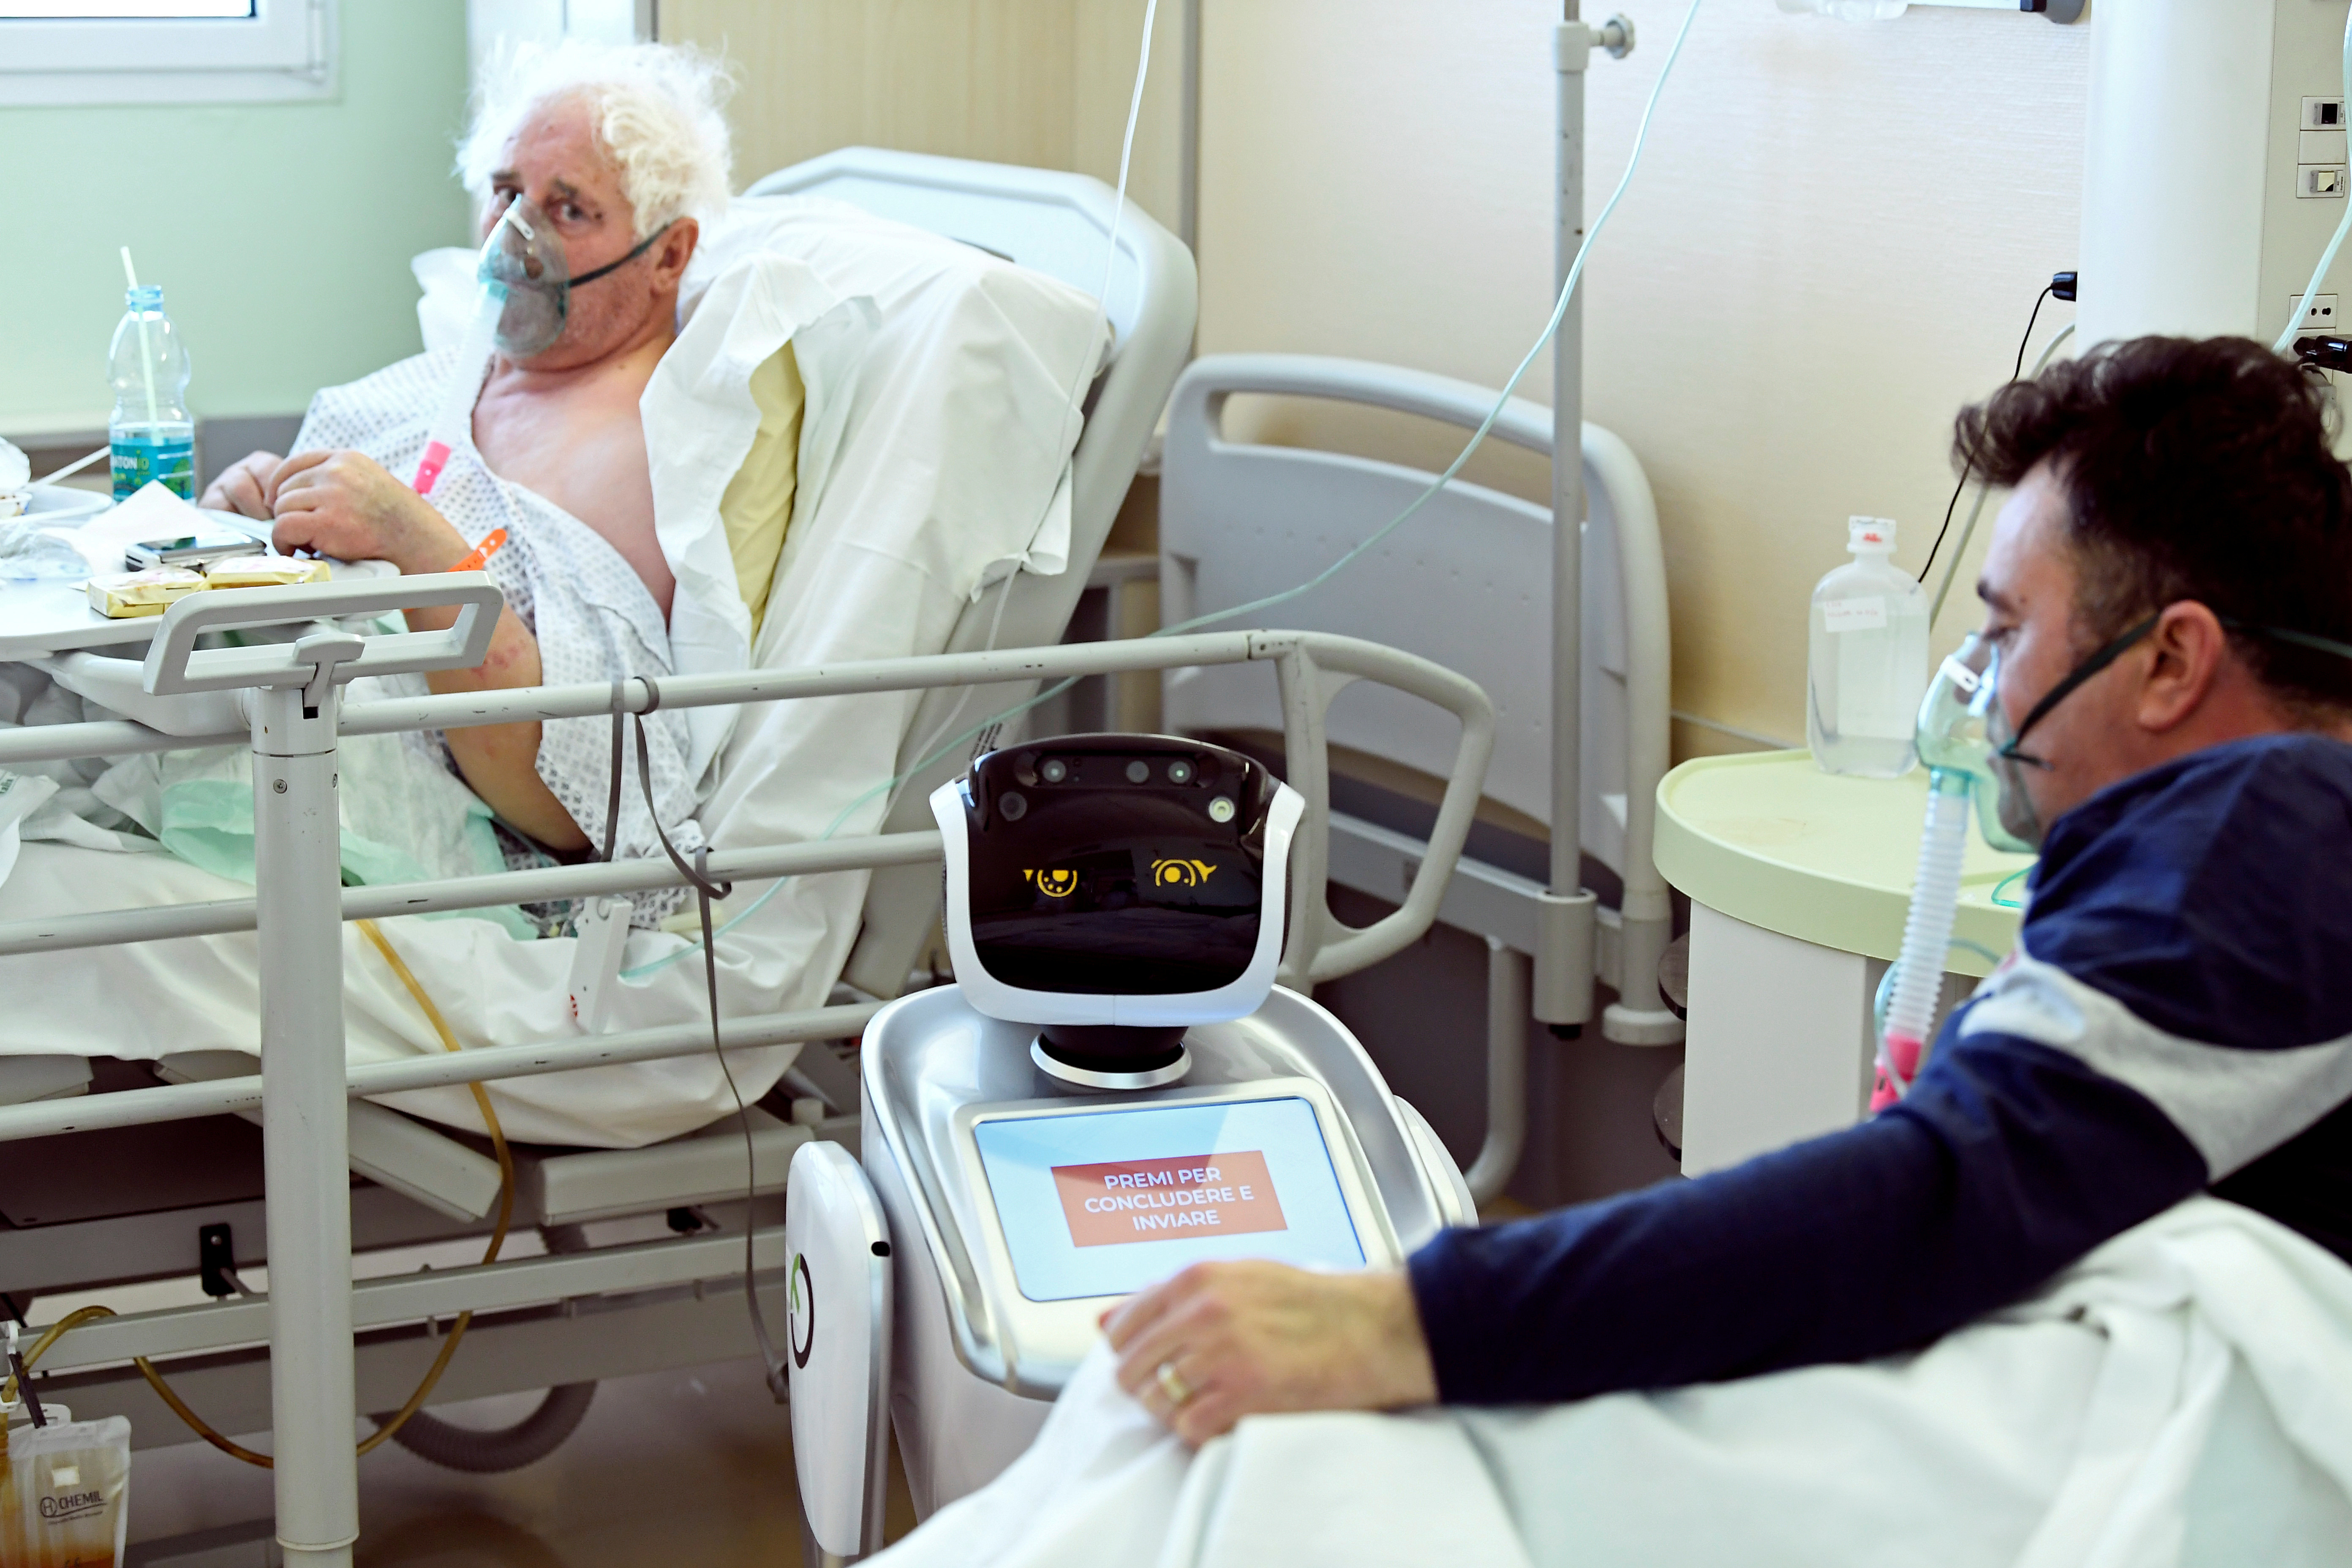 A robot helping medical teams treat patients suffering from the coronavirus disease (COVID-19) is pictured at a patients' roo